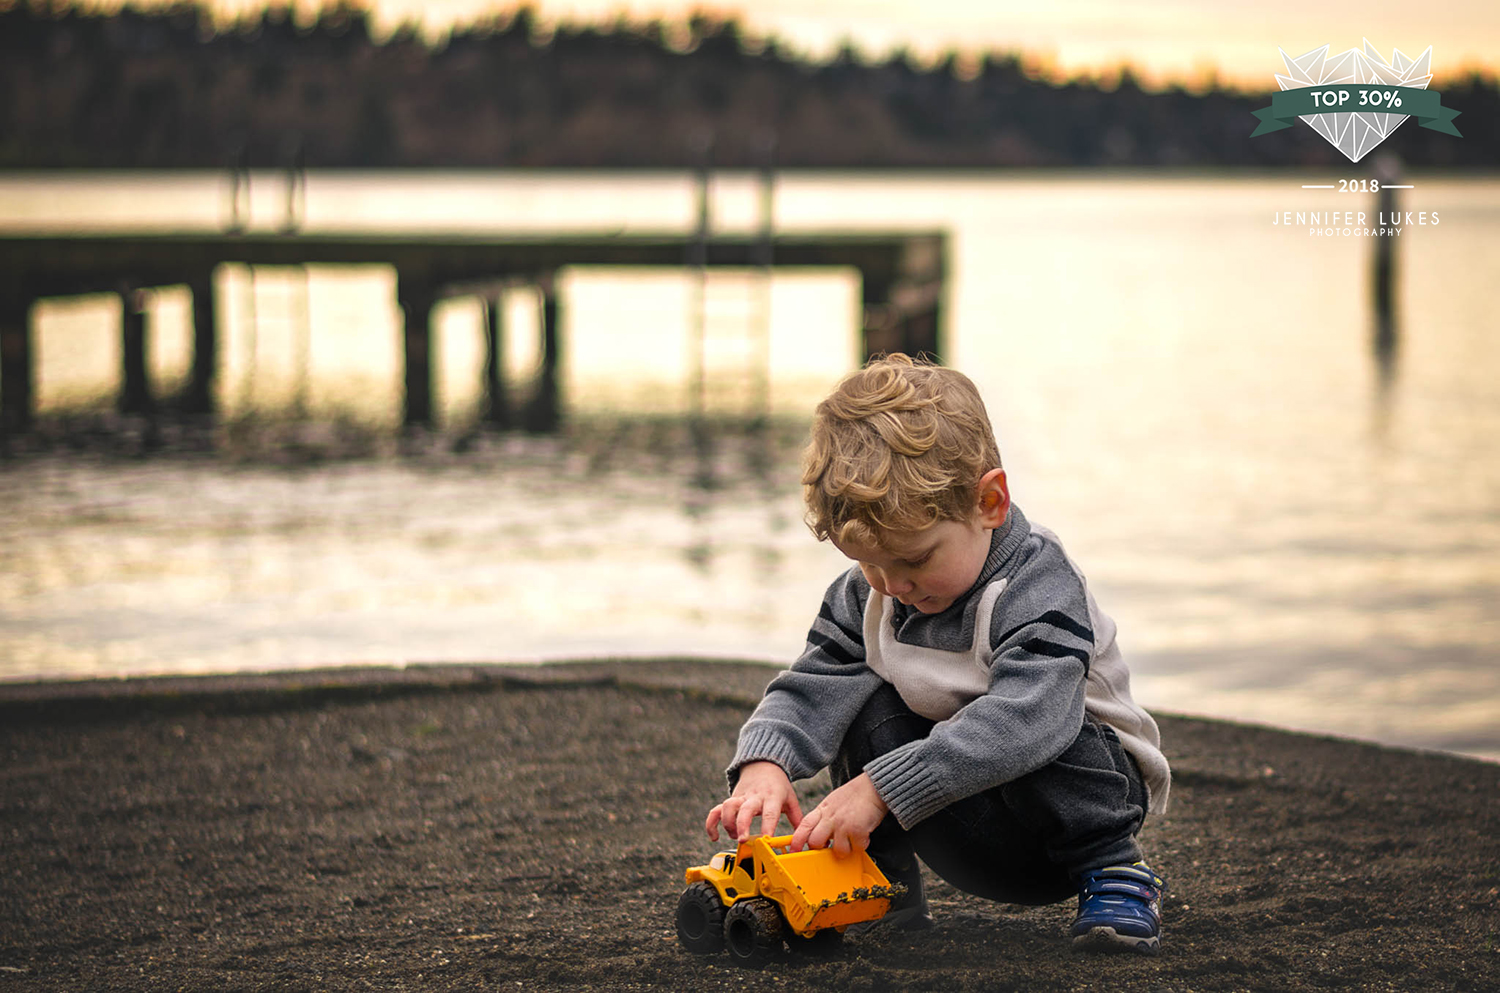 Top 30% award for baby and toddler photo of toddler playing with a bulldozer at Chism Beach in Bellevue, Washington.